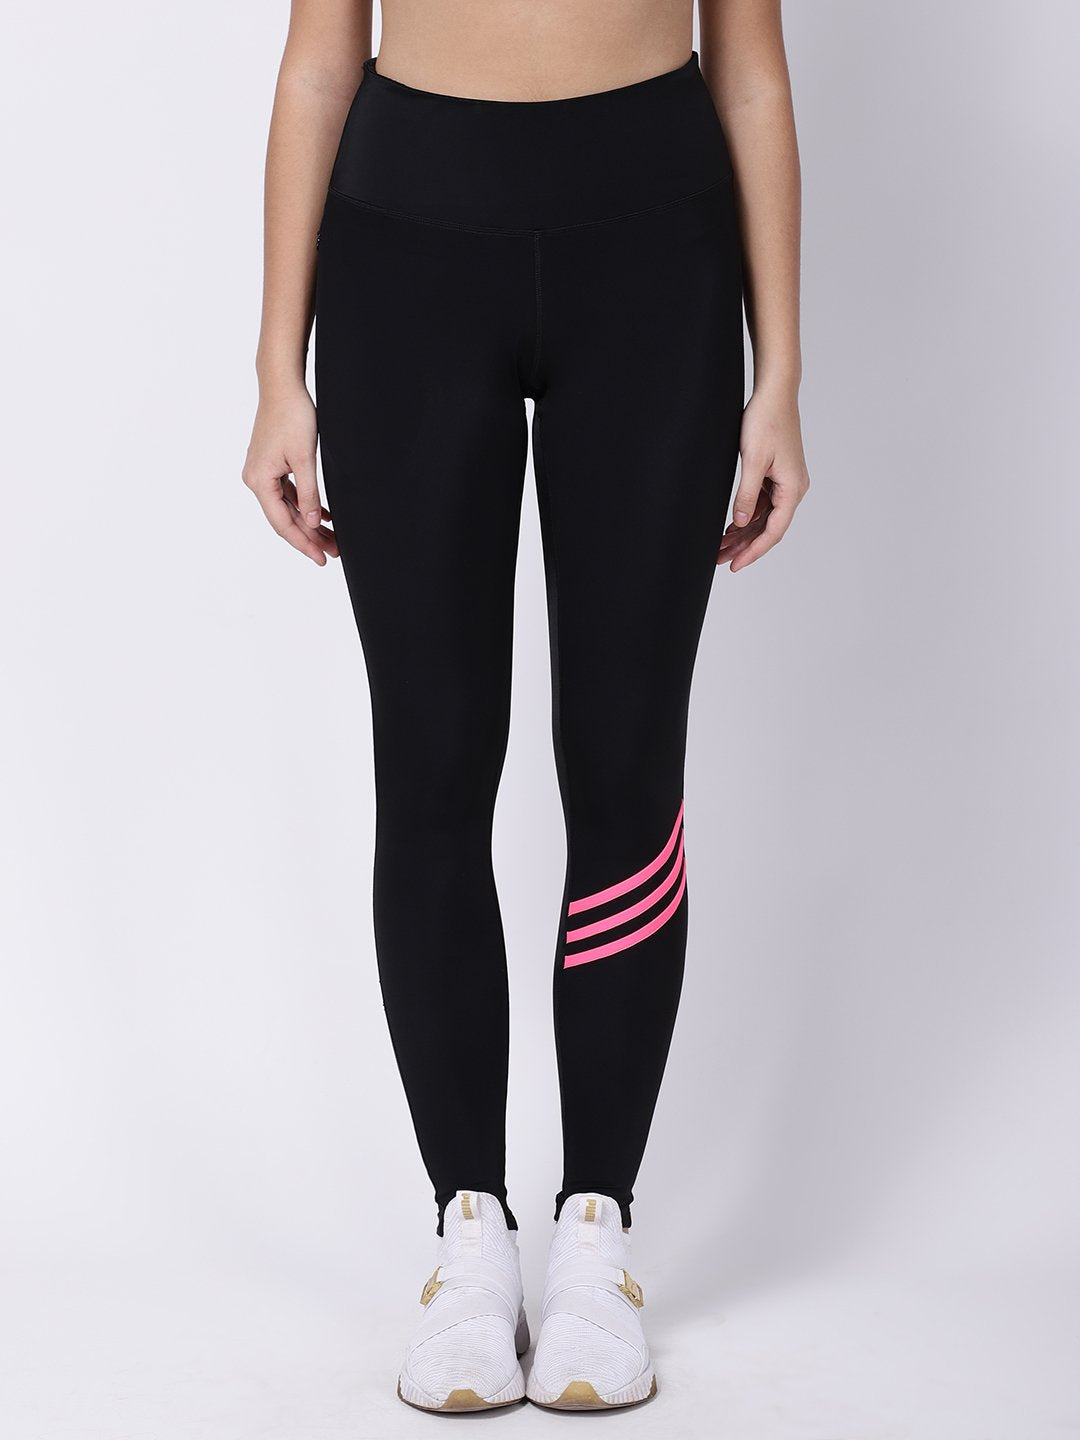 Black Pink Striped Ace Leggings